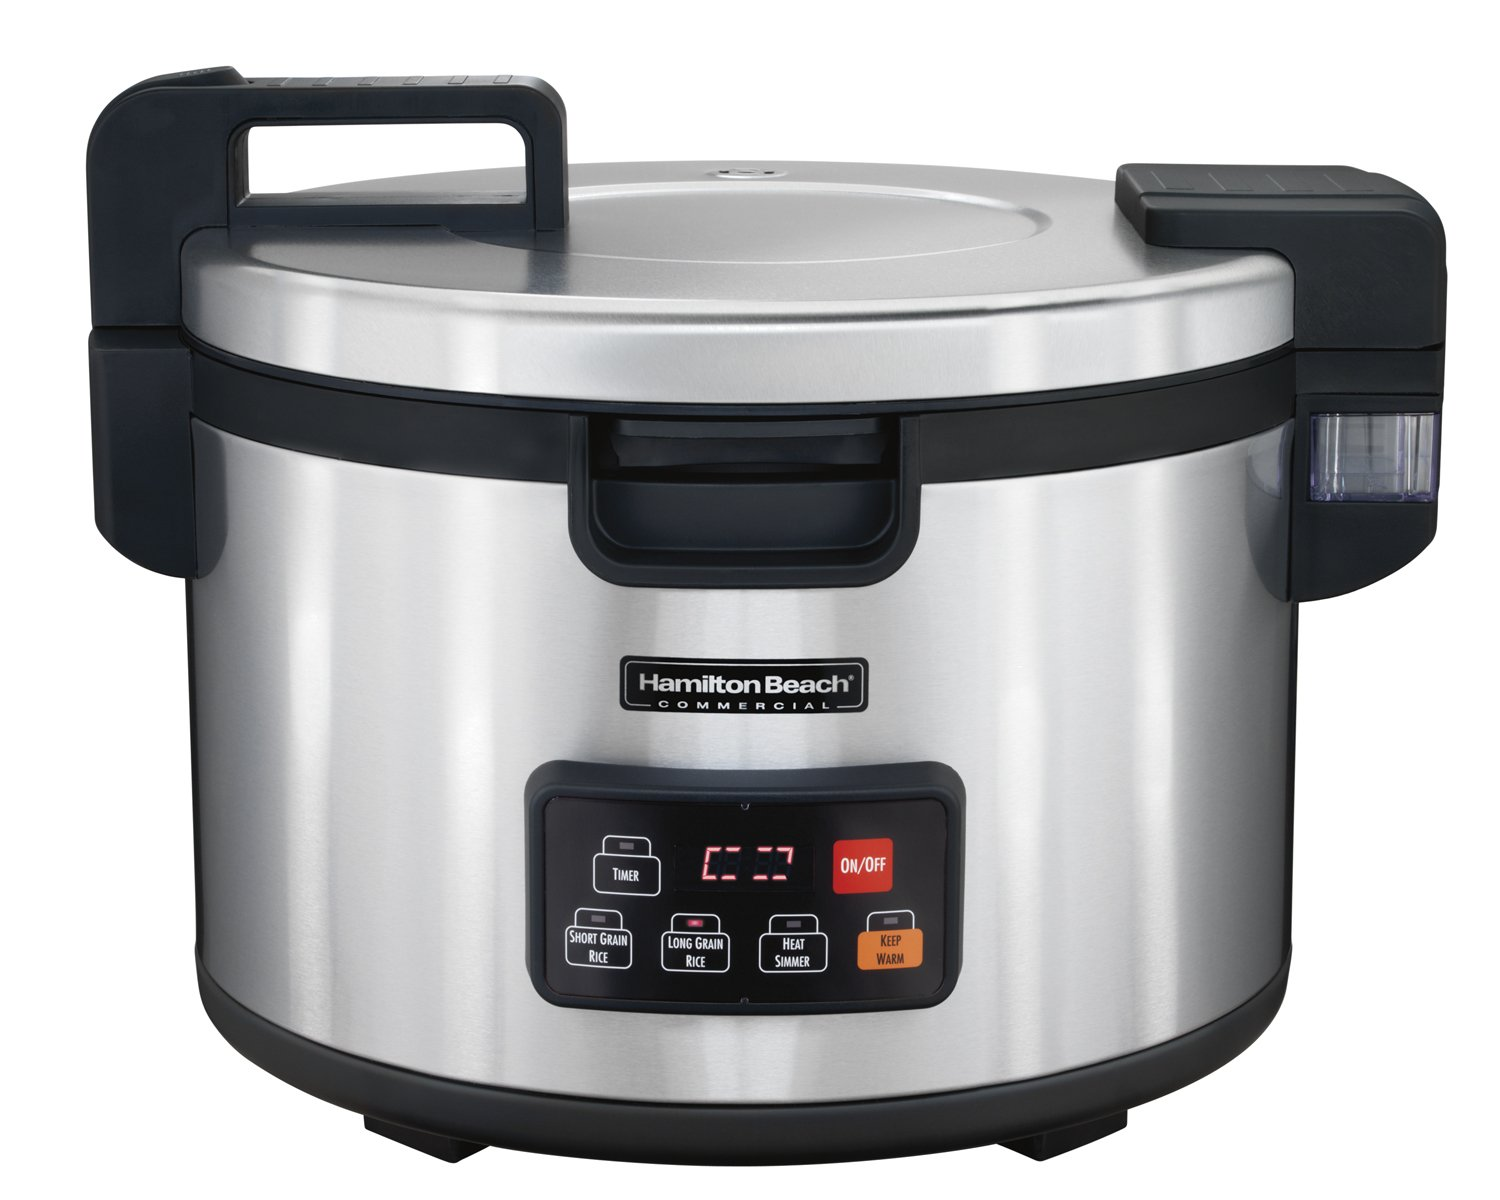 Hamilton Beach Commercial 90 Cup Rice Cooker, Warmer, Stainless Steel (37590)